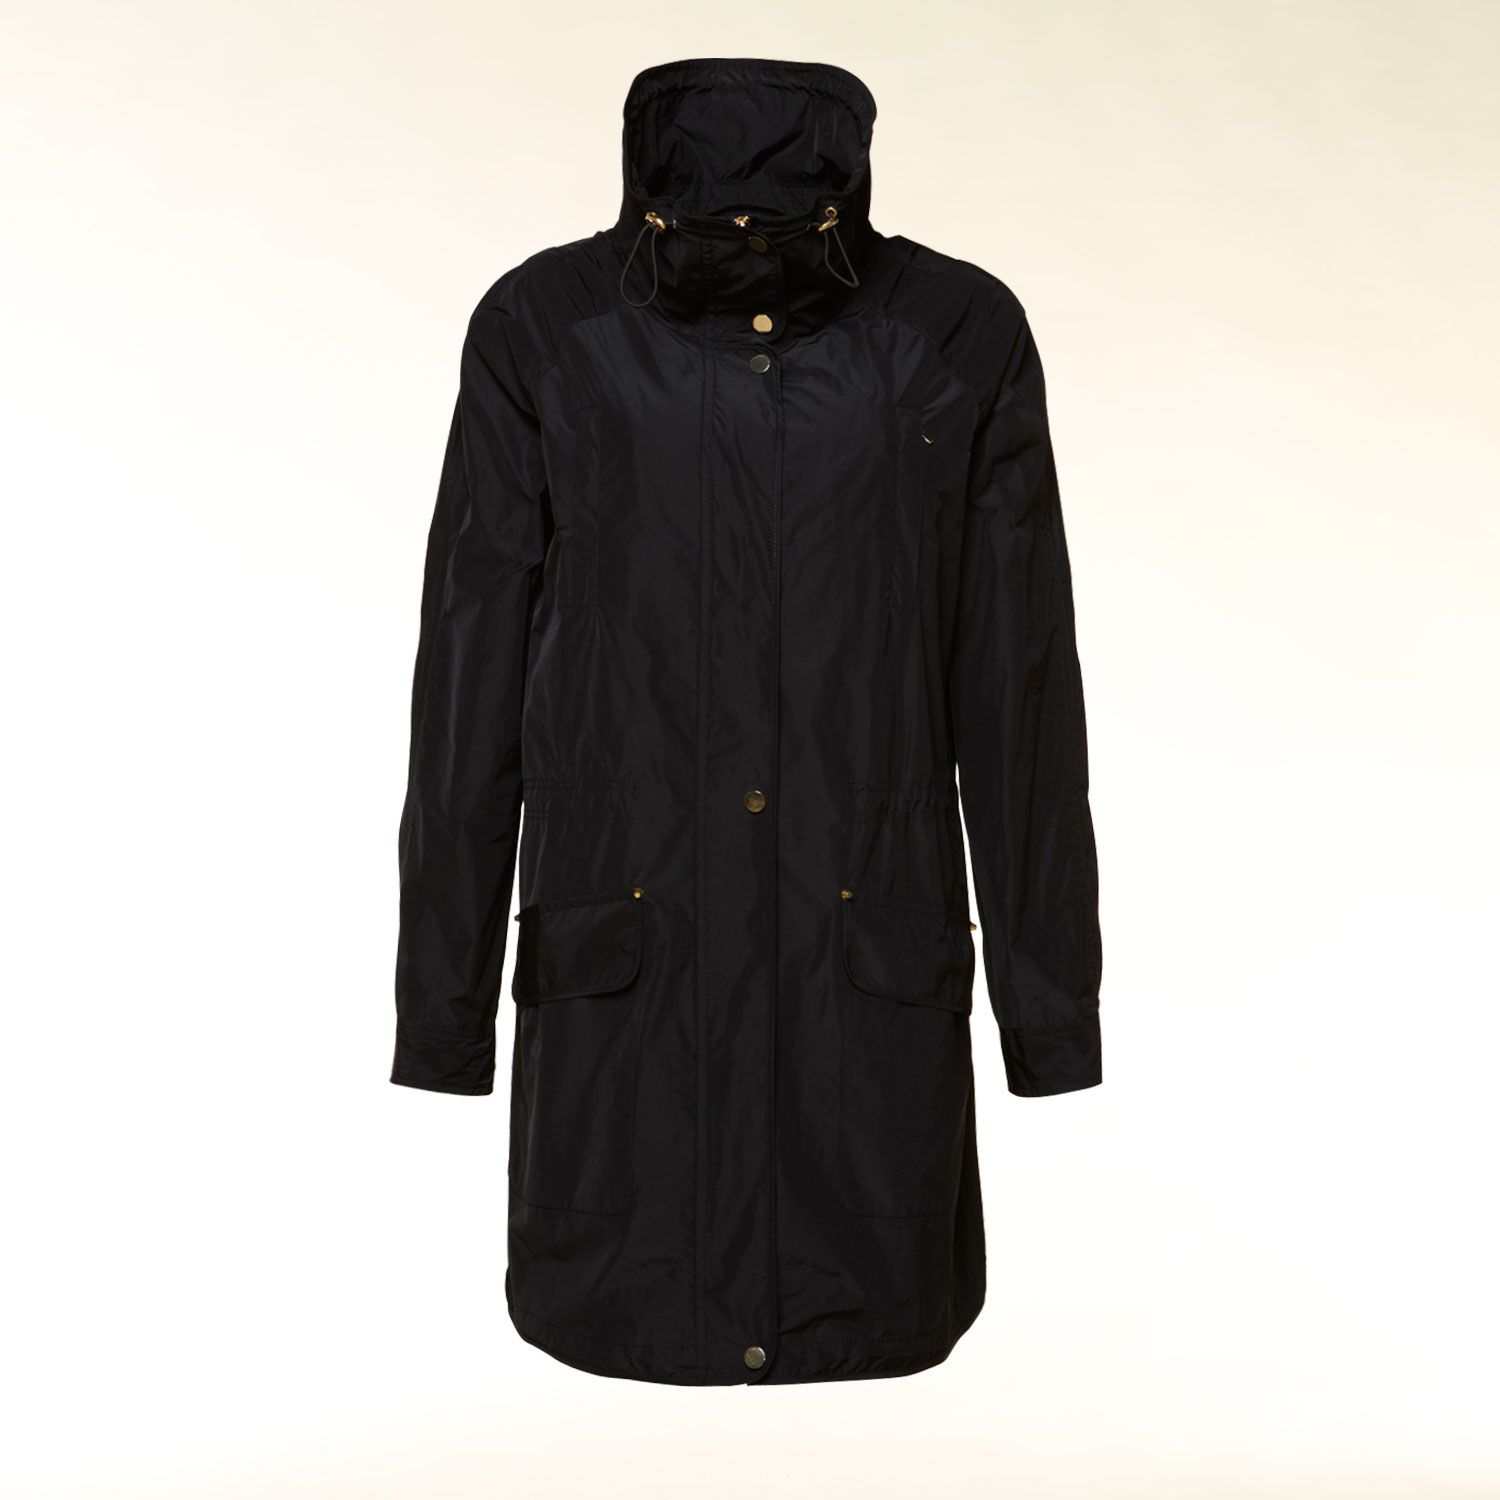 Lightweight funnel neck parka